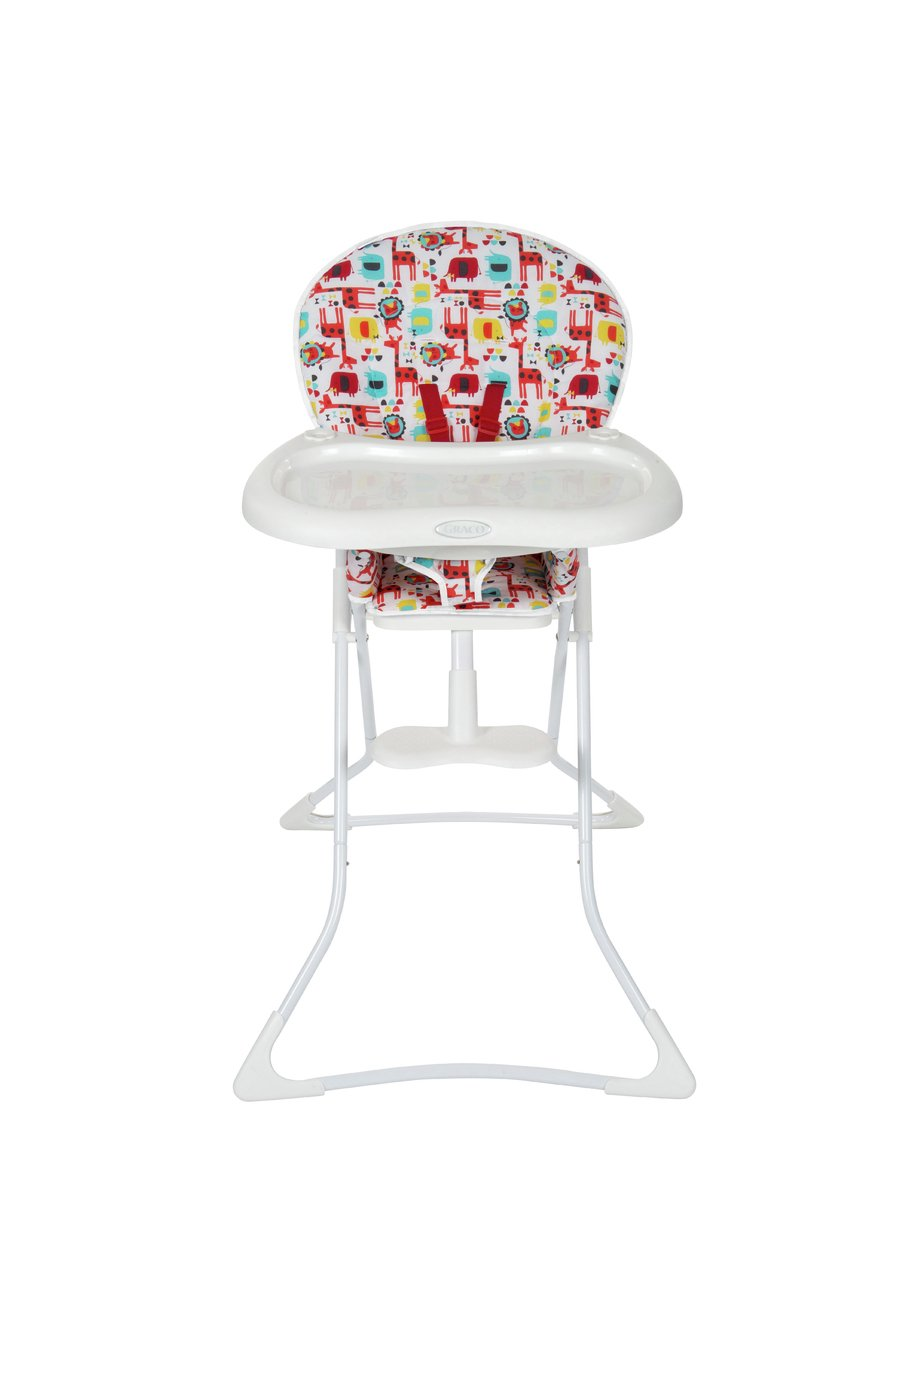 Graco Teatime Wild Day Out Highchair